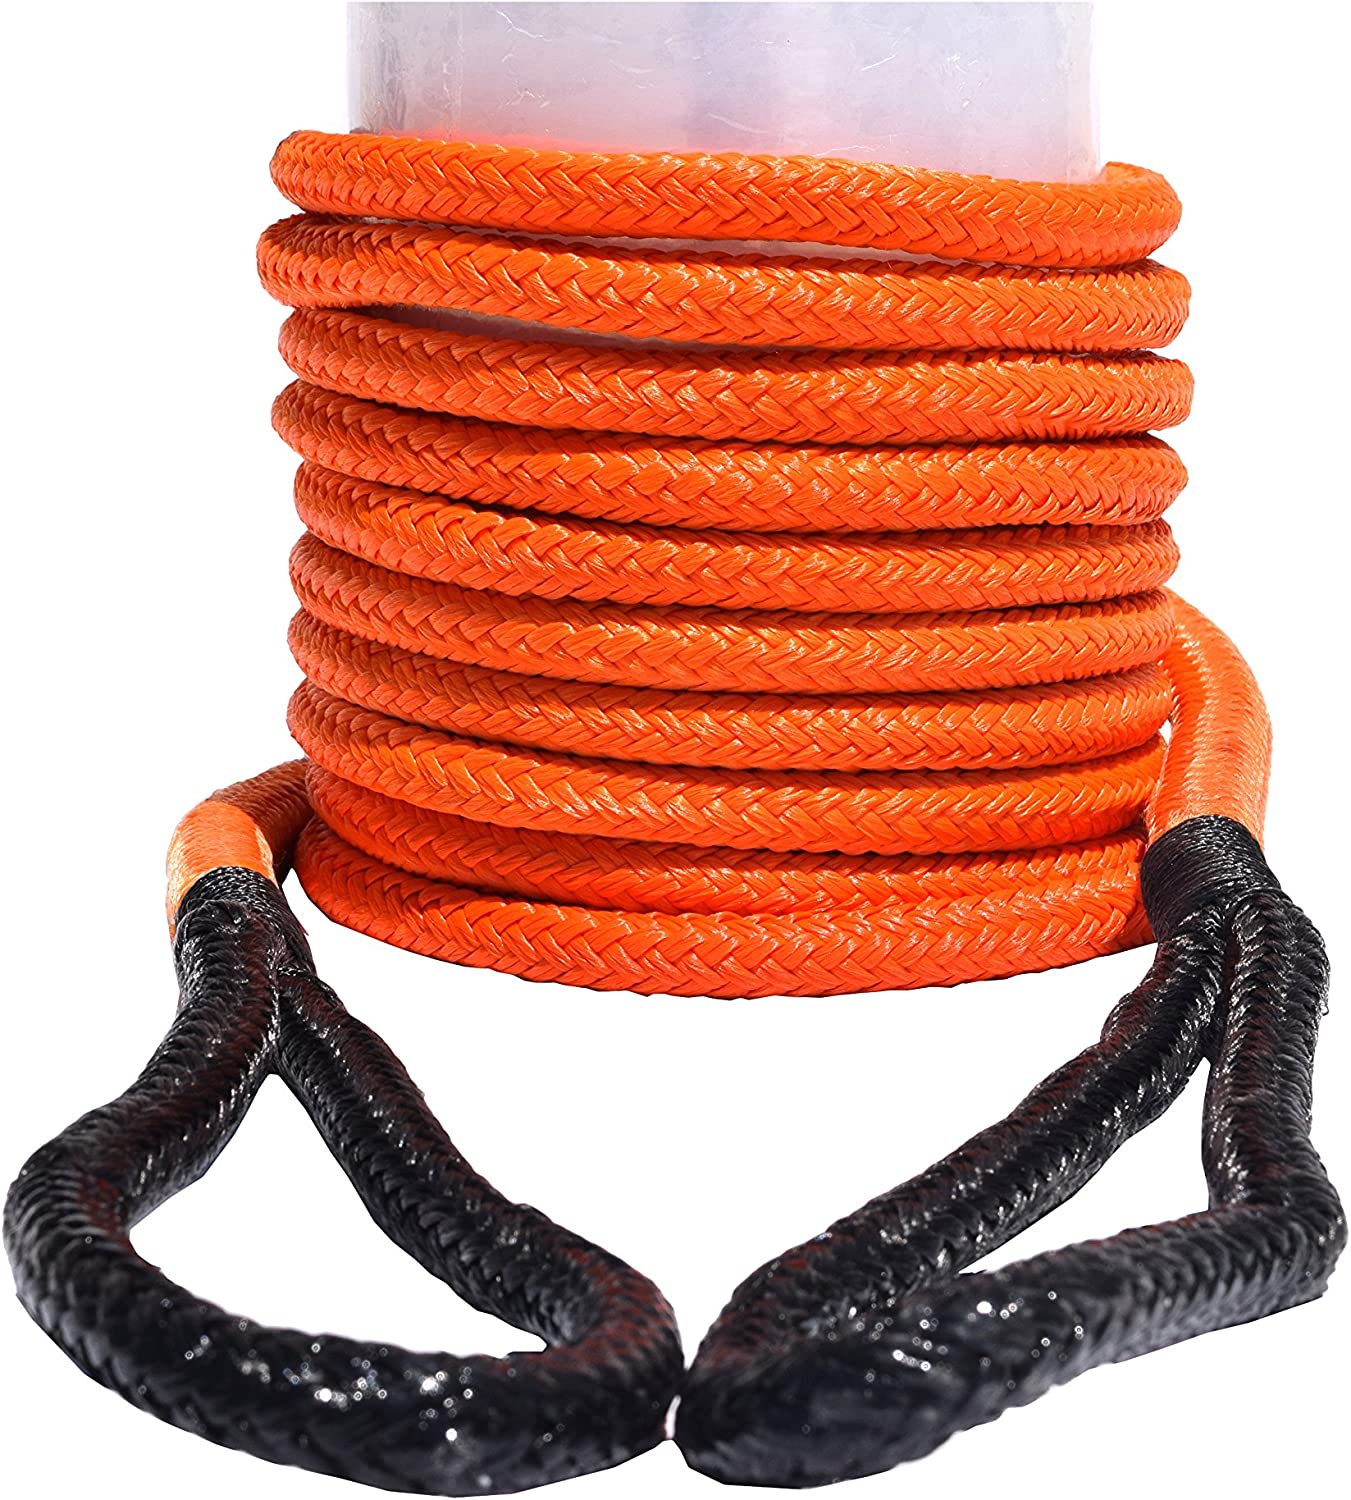 Orange QIQU 3//4*30ft Kinetic Energy Recovery Rope,Double Braided Nylon Kinetic Rope with Loops